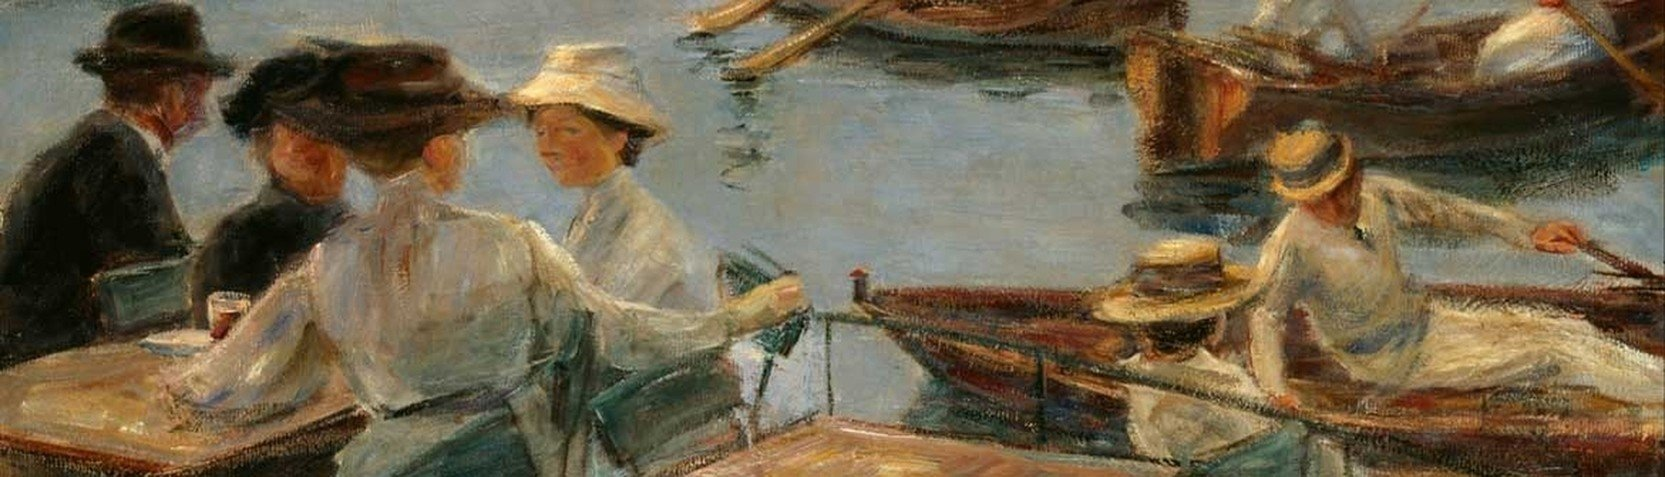 Artists A-Z - Max Liebermann